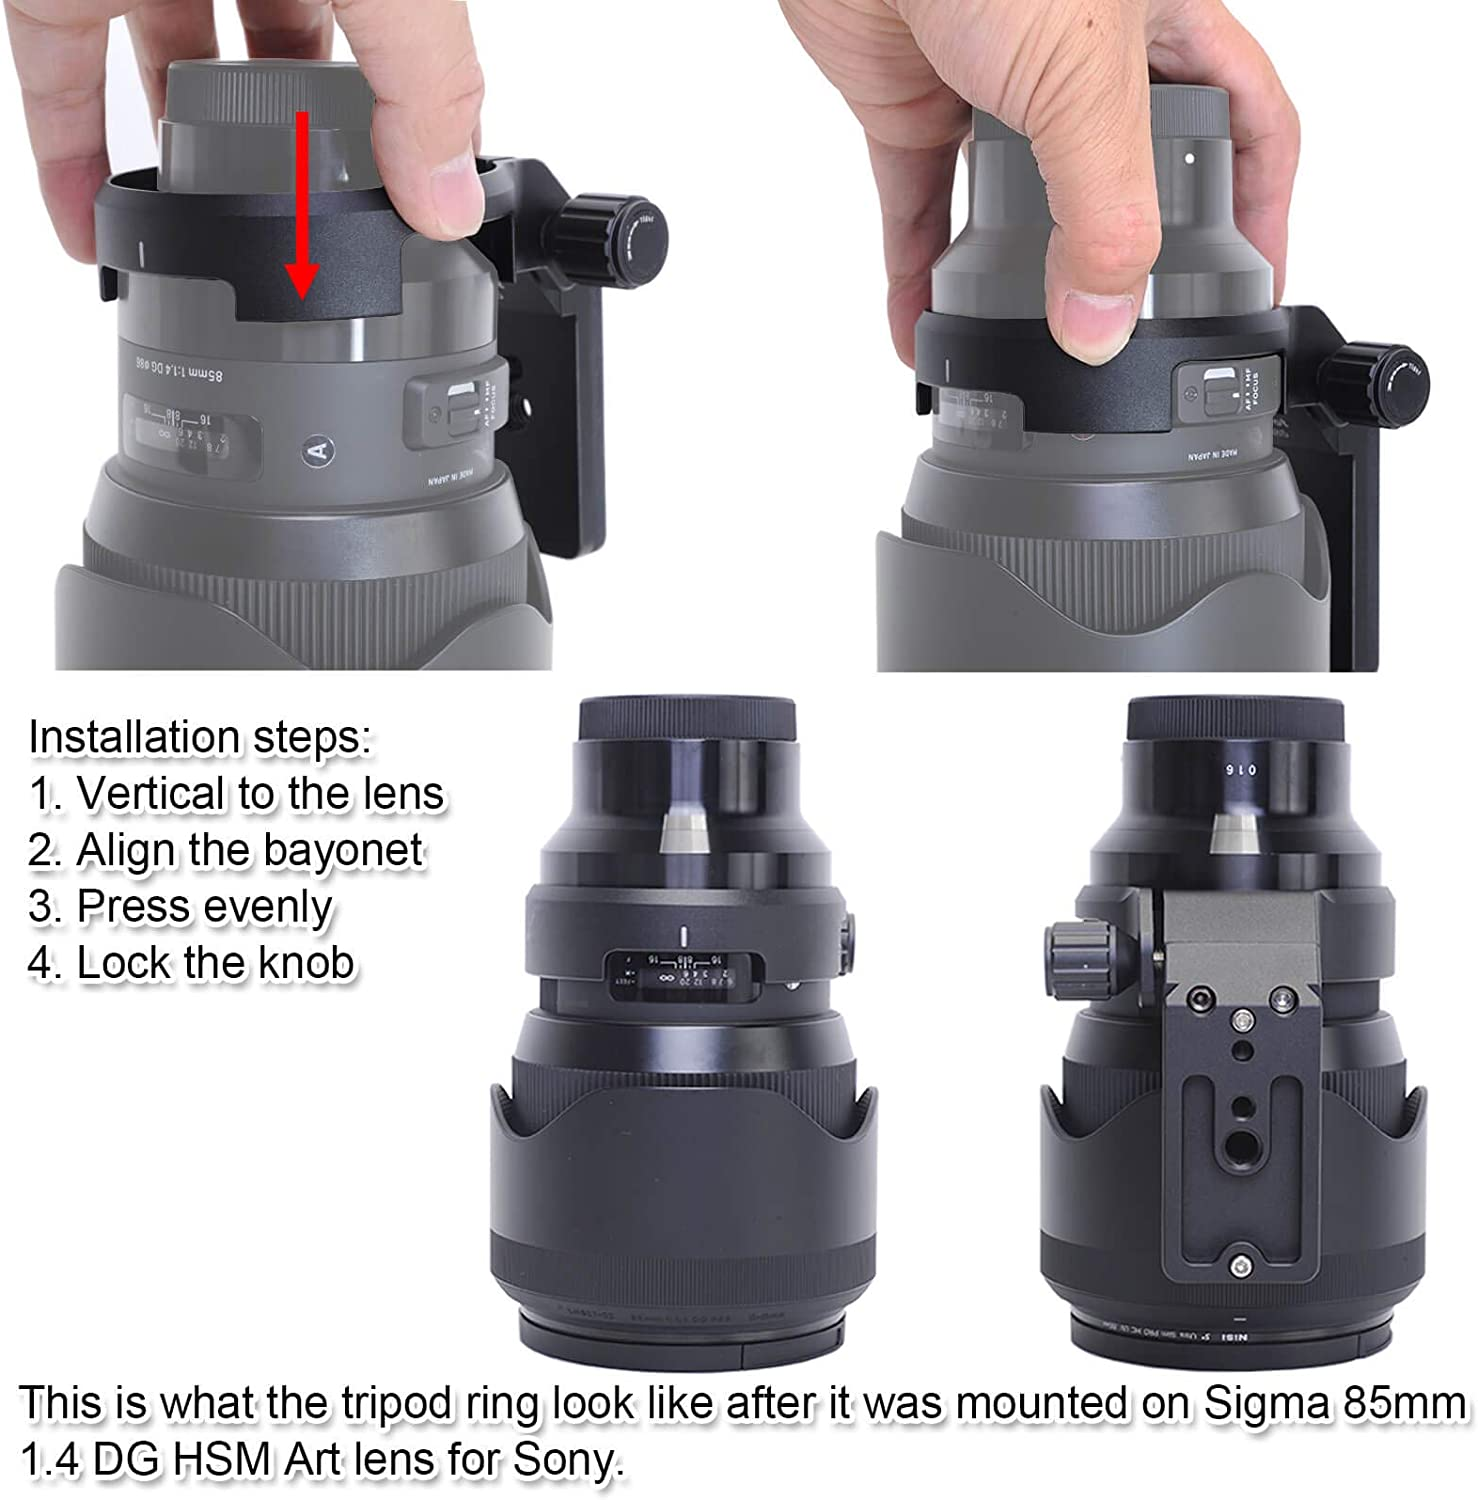 CNC Lens Collar for Sigma 85mm f//1.4 DG HSM Art Lens iShoot Tripod Mount Ring Built-in ARCA Type Quick Release Plate Compatible with Tripod Ball Head of PMG Fit for Canon EF, Nikon AF, Sony E Mount